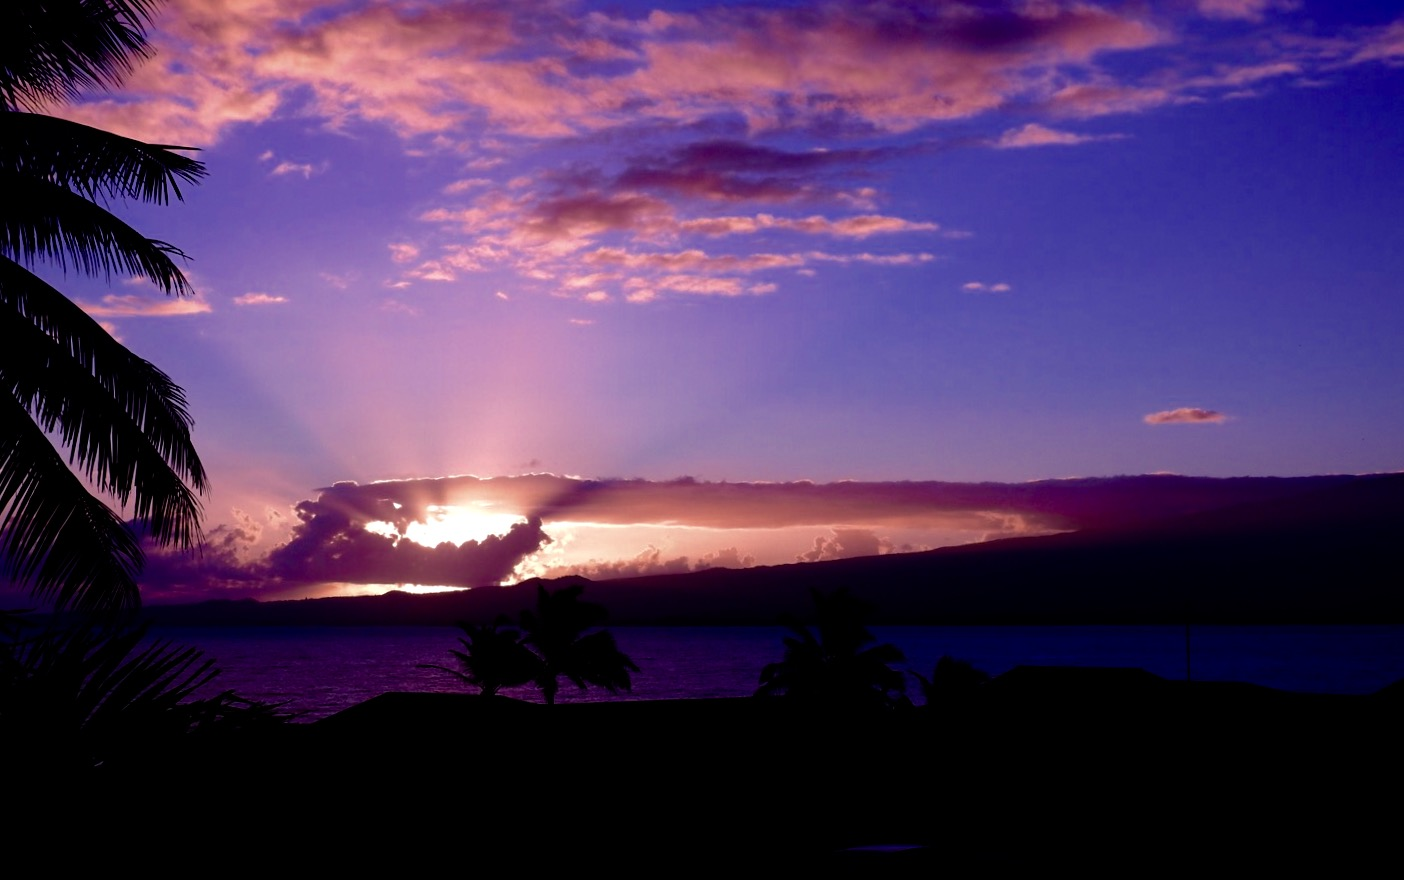 Sunrise over Kahului Harbor and Haleakala